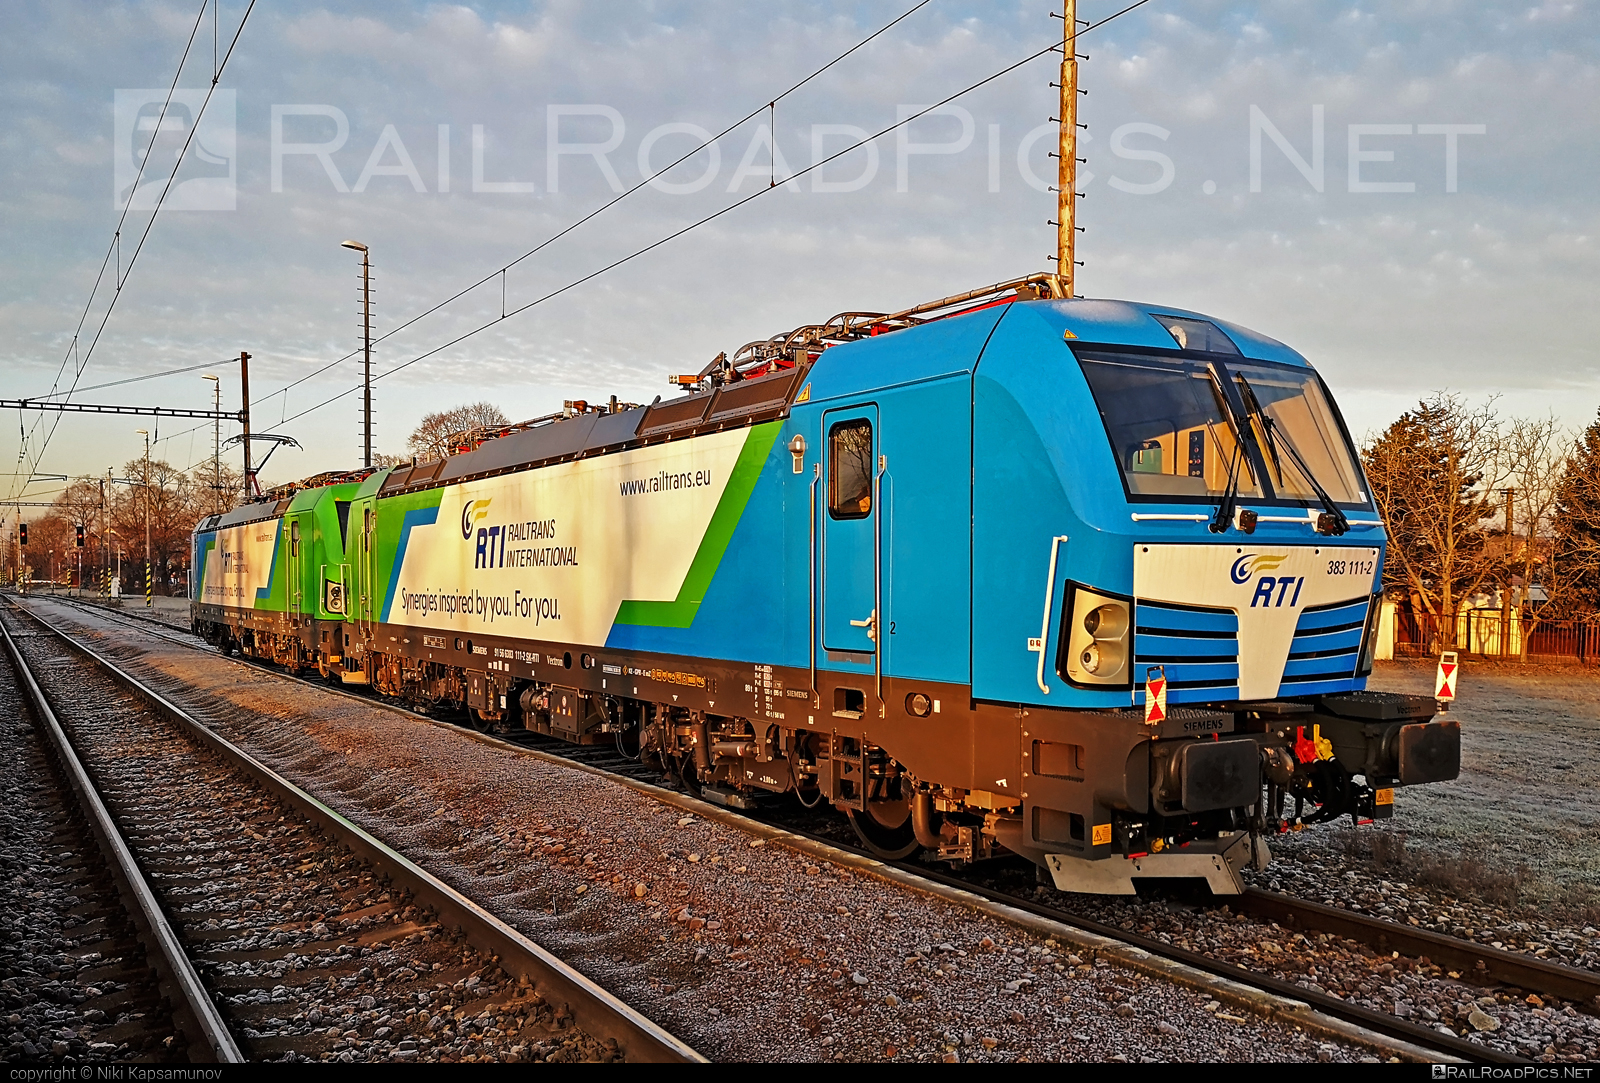 Siemens Vectron MS - 383 111-2 operated by Railtrans International, s.r.o #siemens #siemensvectron #siemensvectronms #vectron #vectronms